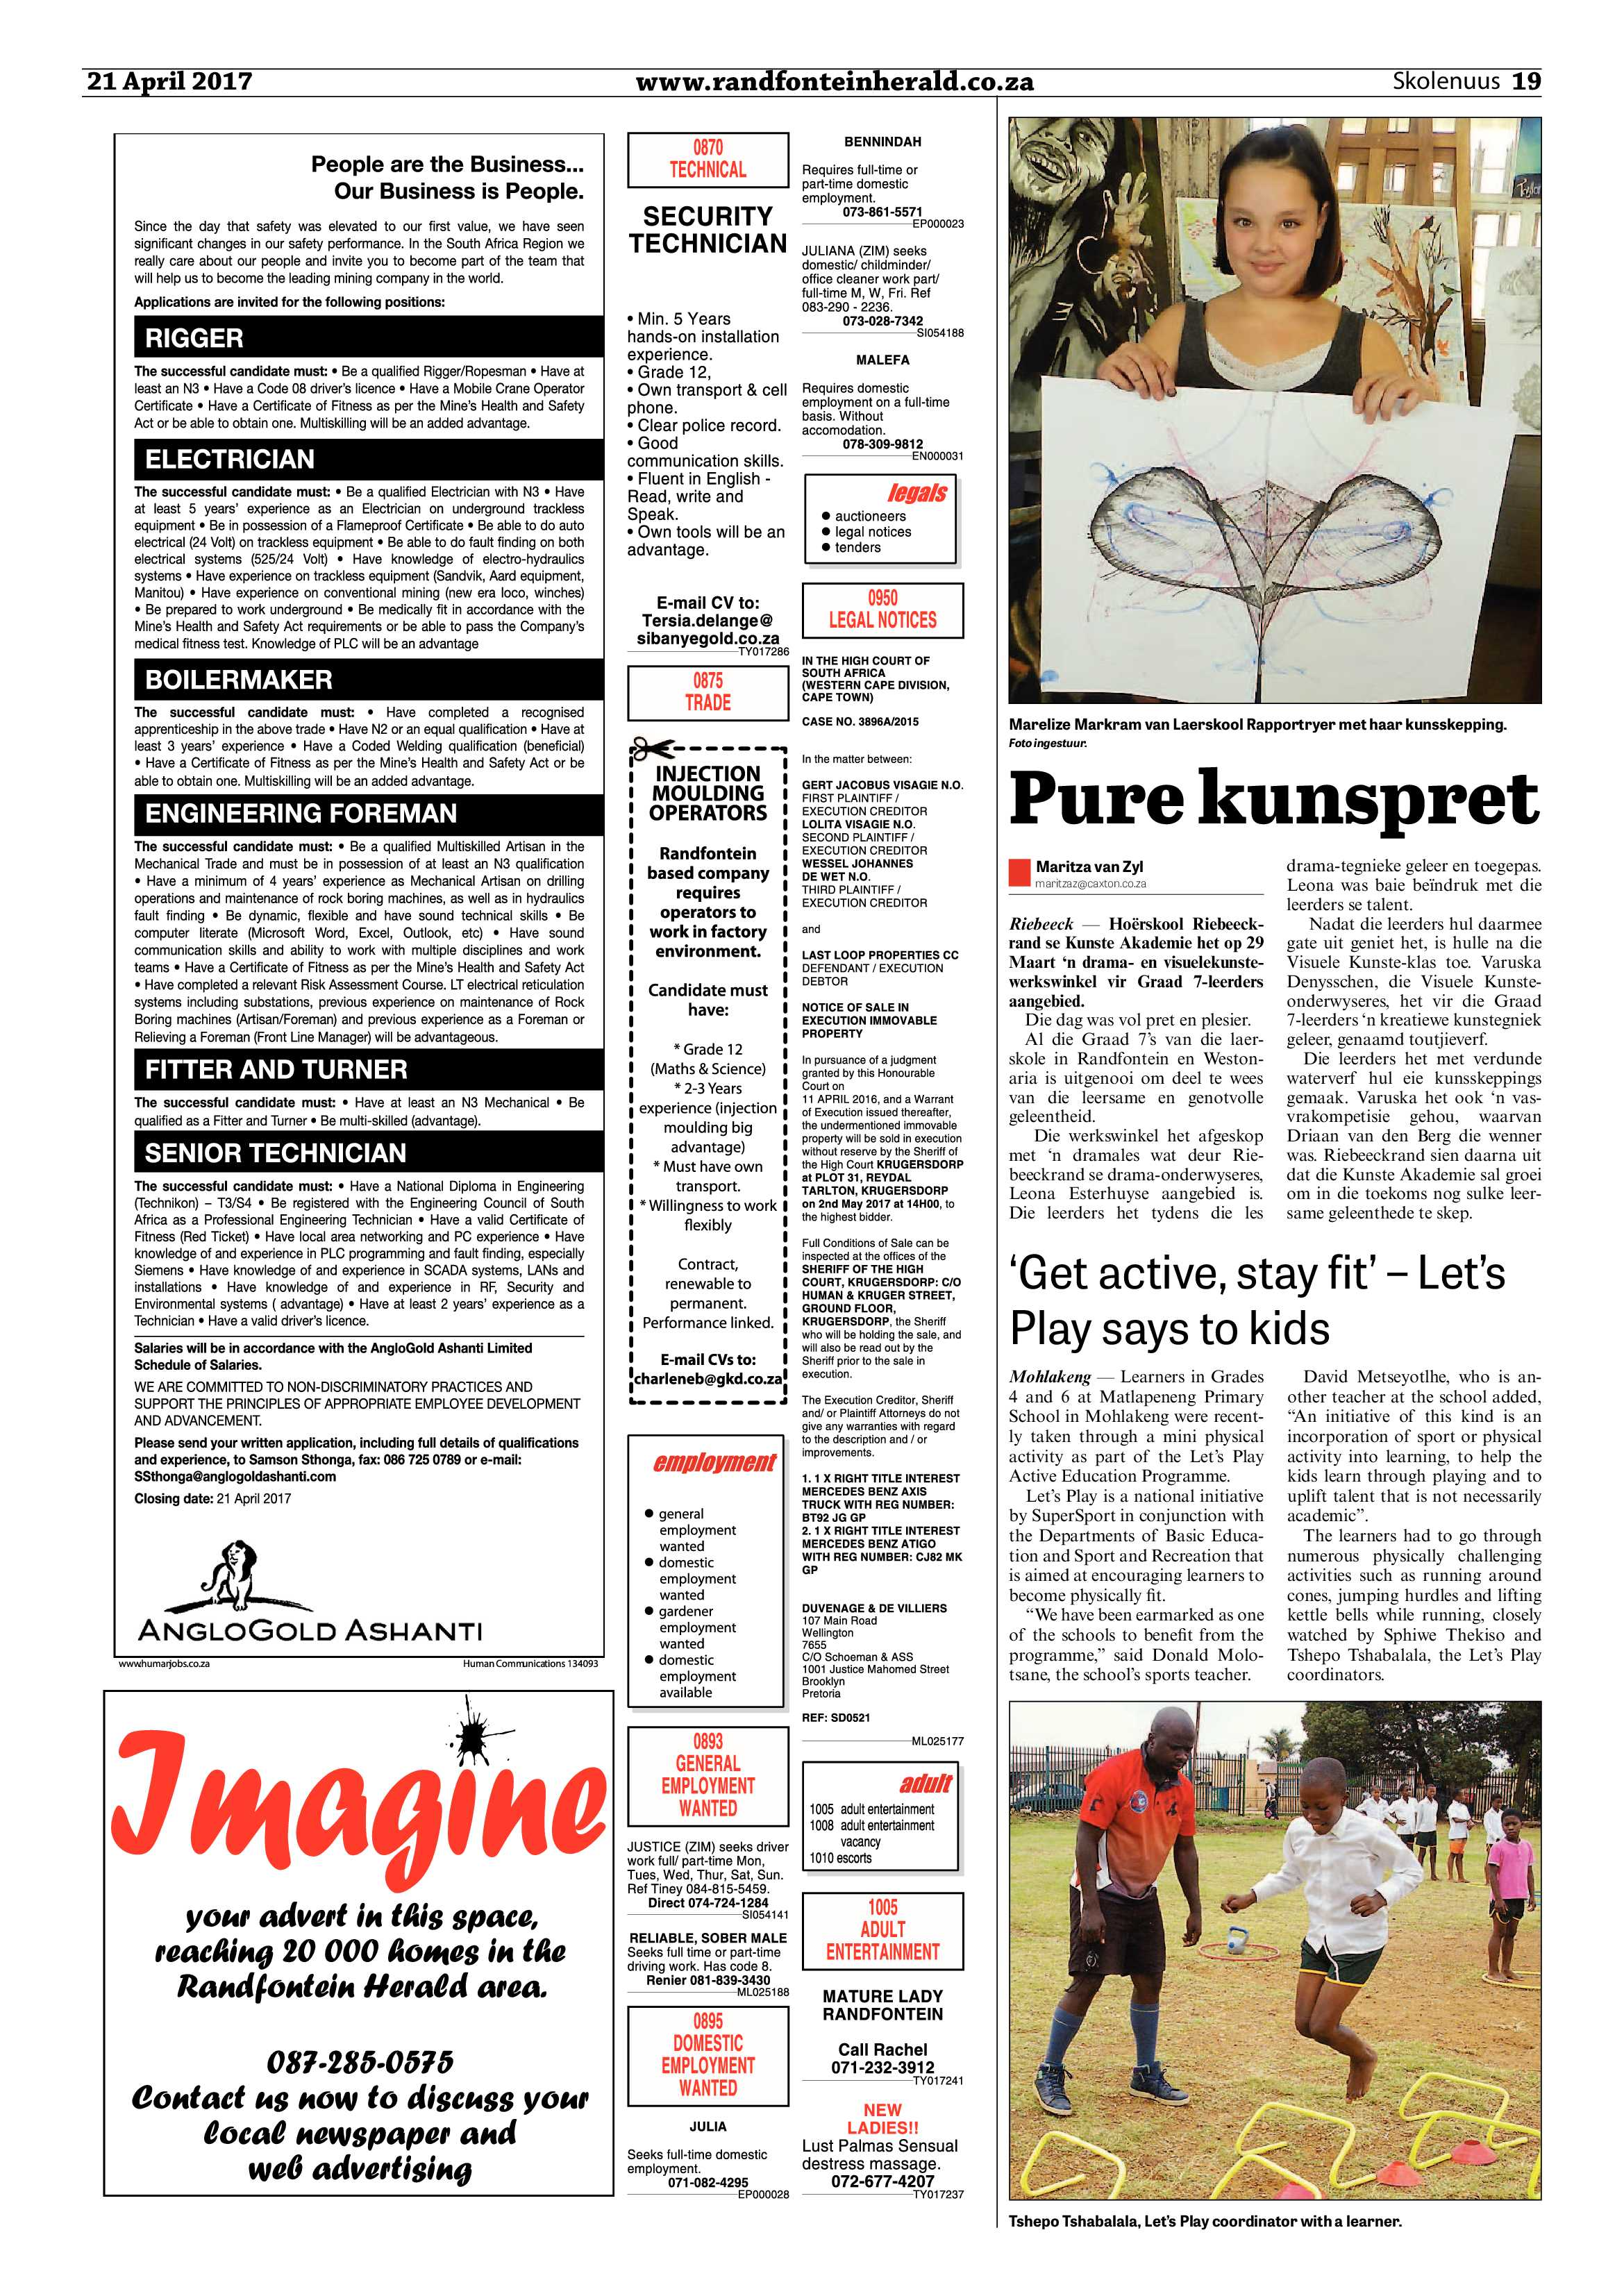 randfontein-herald-21-april-2017-epapers-page-19